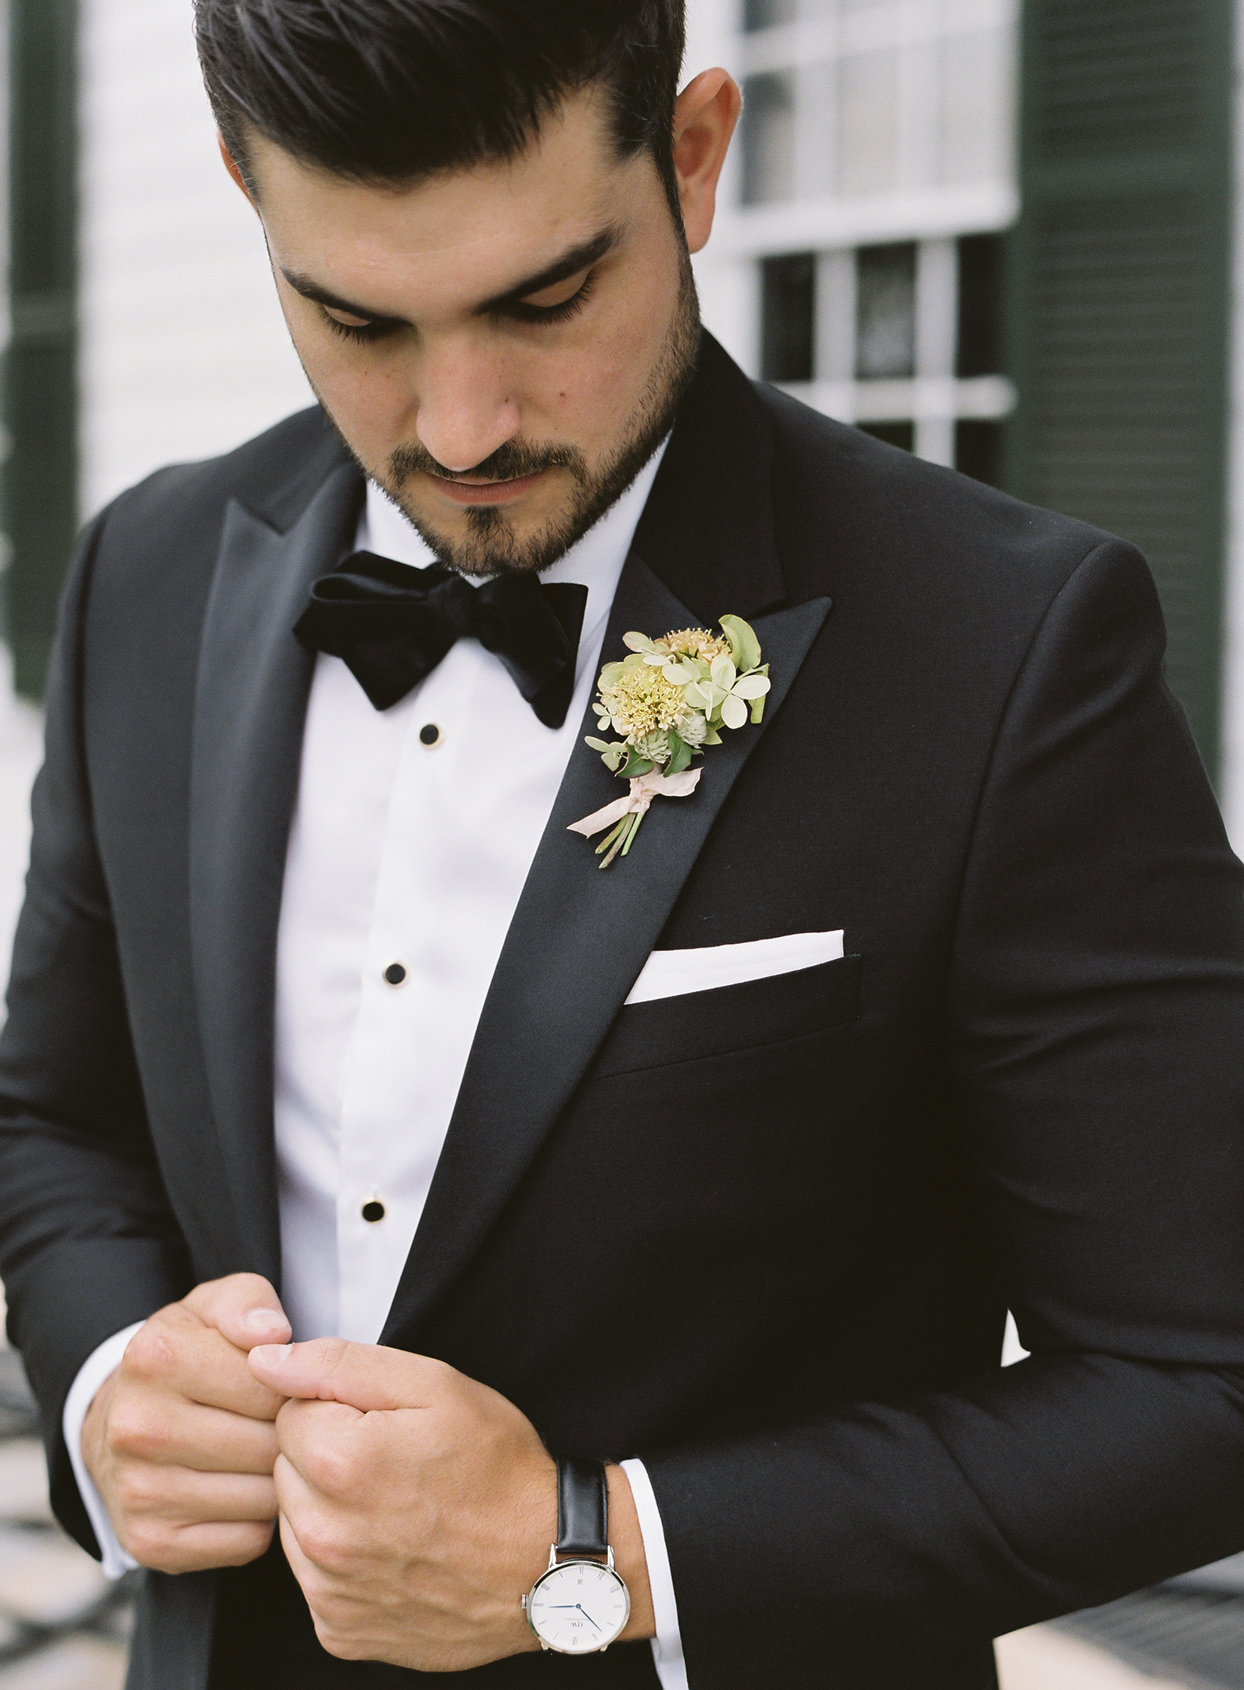 Groom in tux from The Black Tux featuring black bow tie, black studs, and a crisp white pocket square